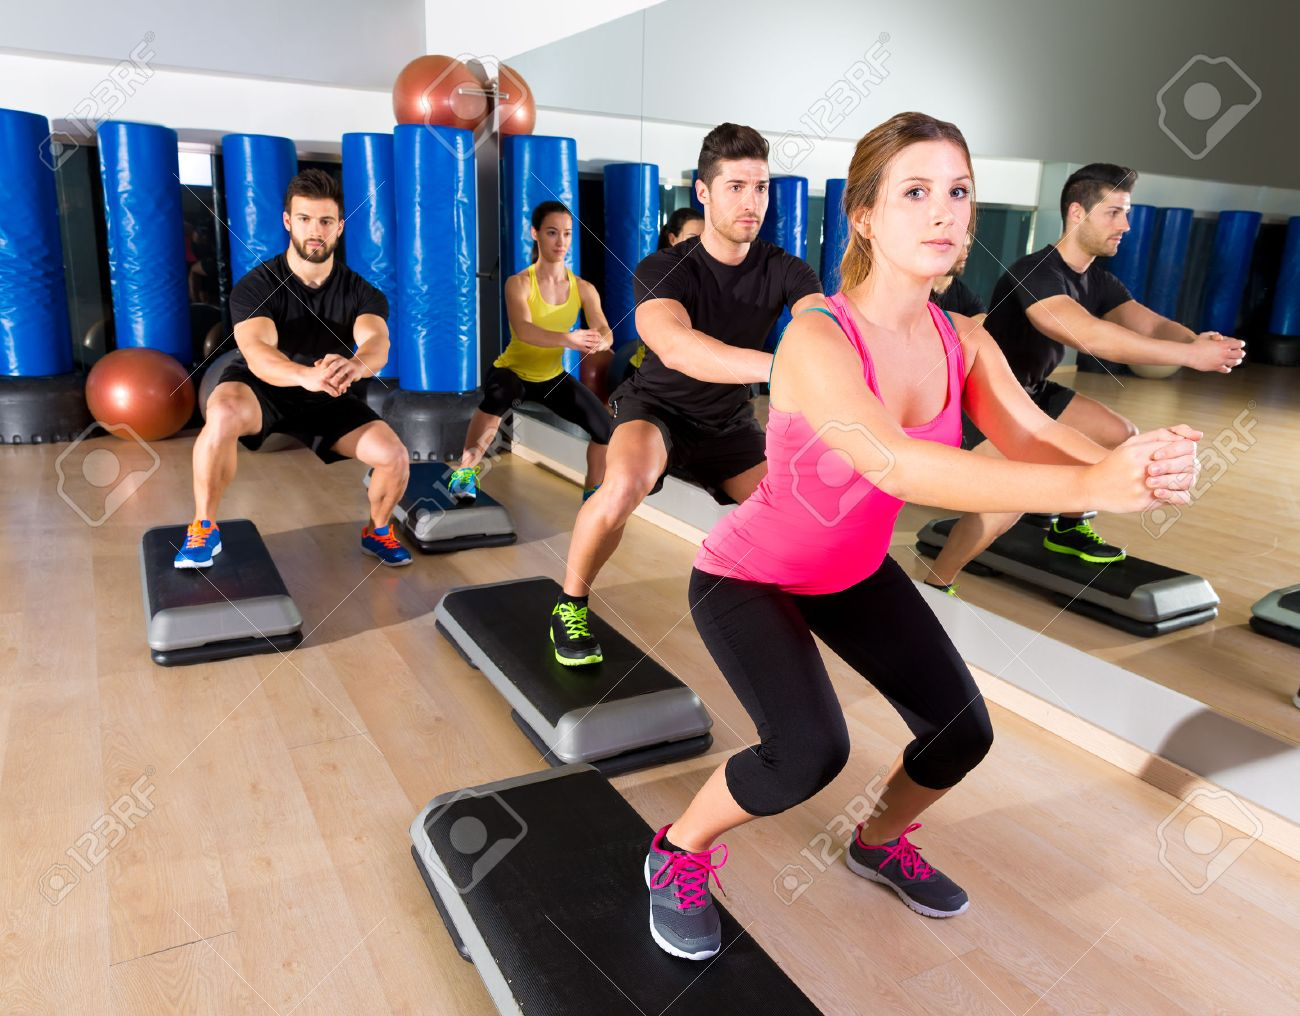 Cardio Step Dance Squat People Group At Fitness Gym Training Workout Stock Photo